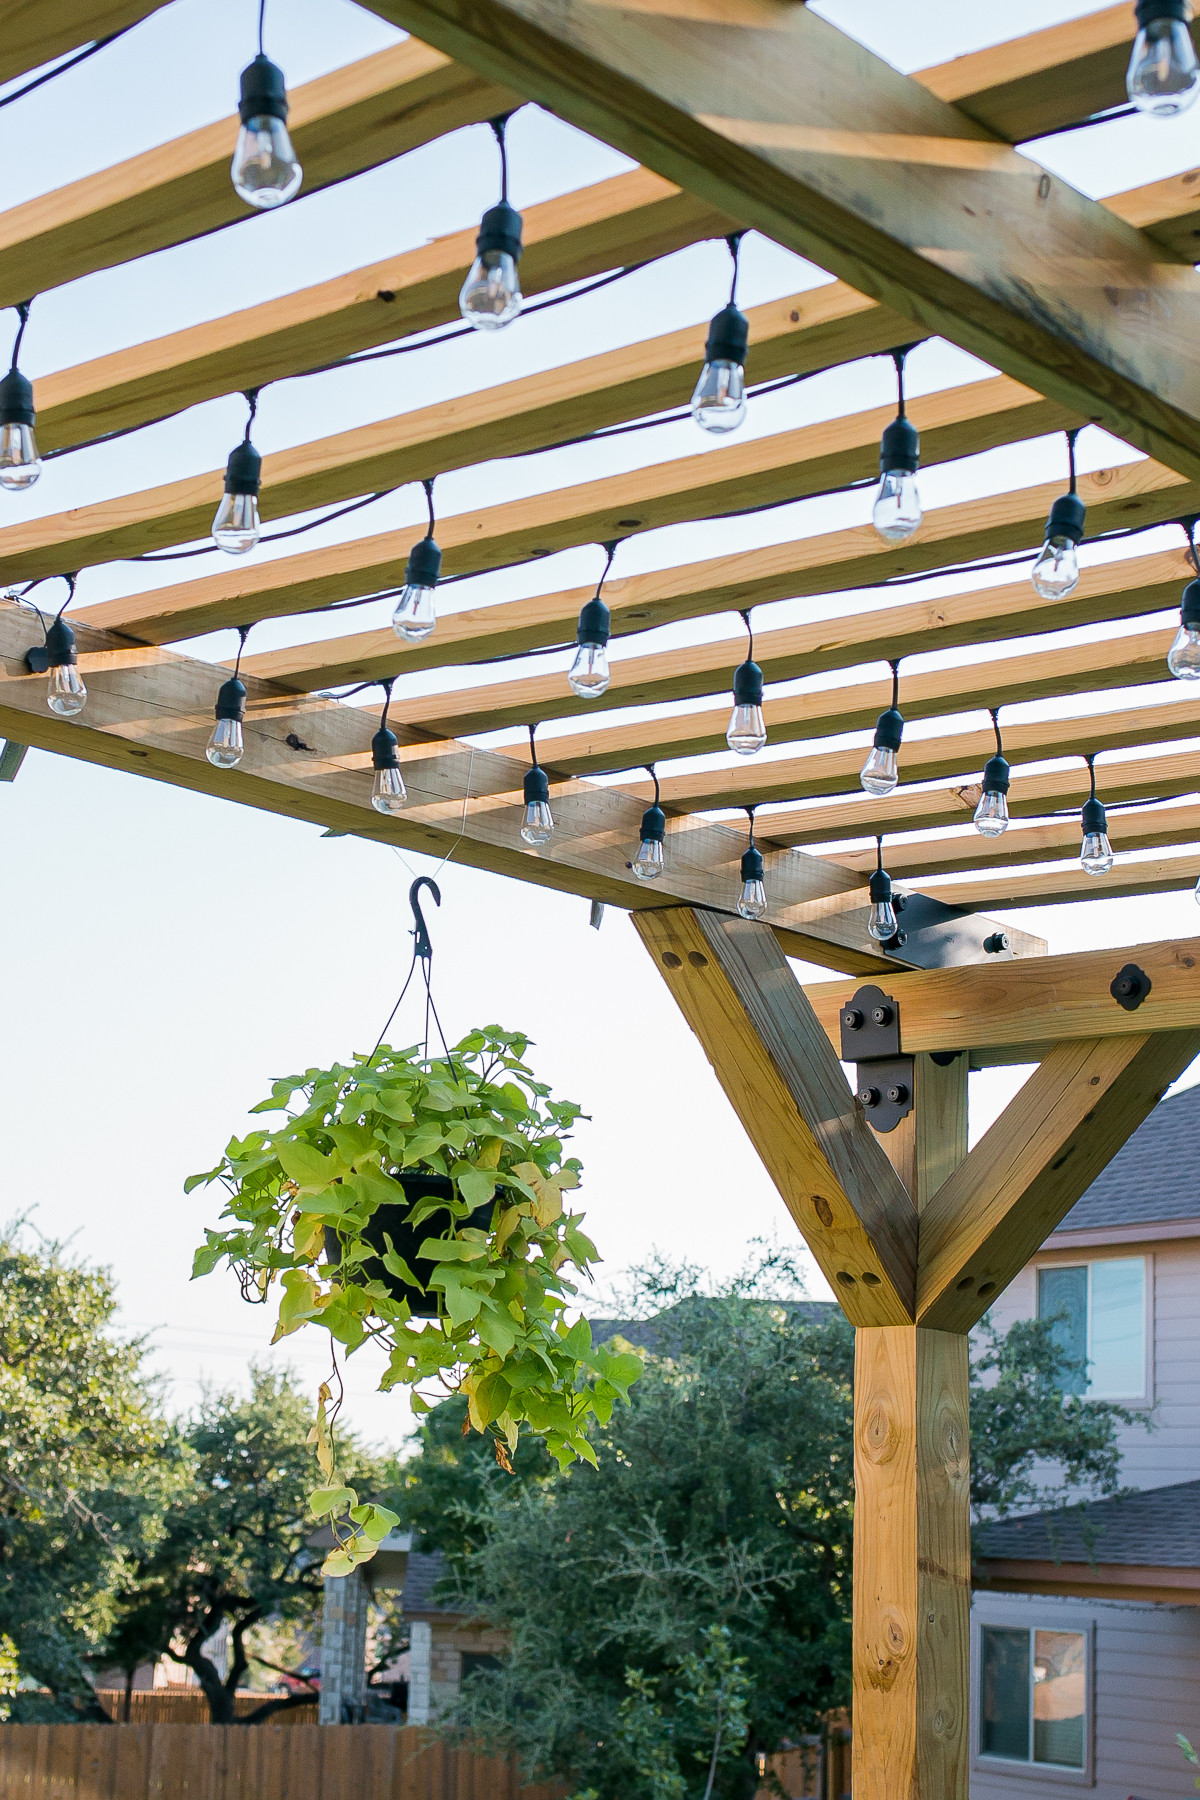 Best ideas about Pergola Plans DIY . Save or Pin How To Build A DIY Pergola with Simpson Strong Tie Outdoor Now.